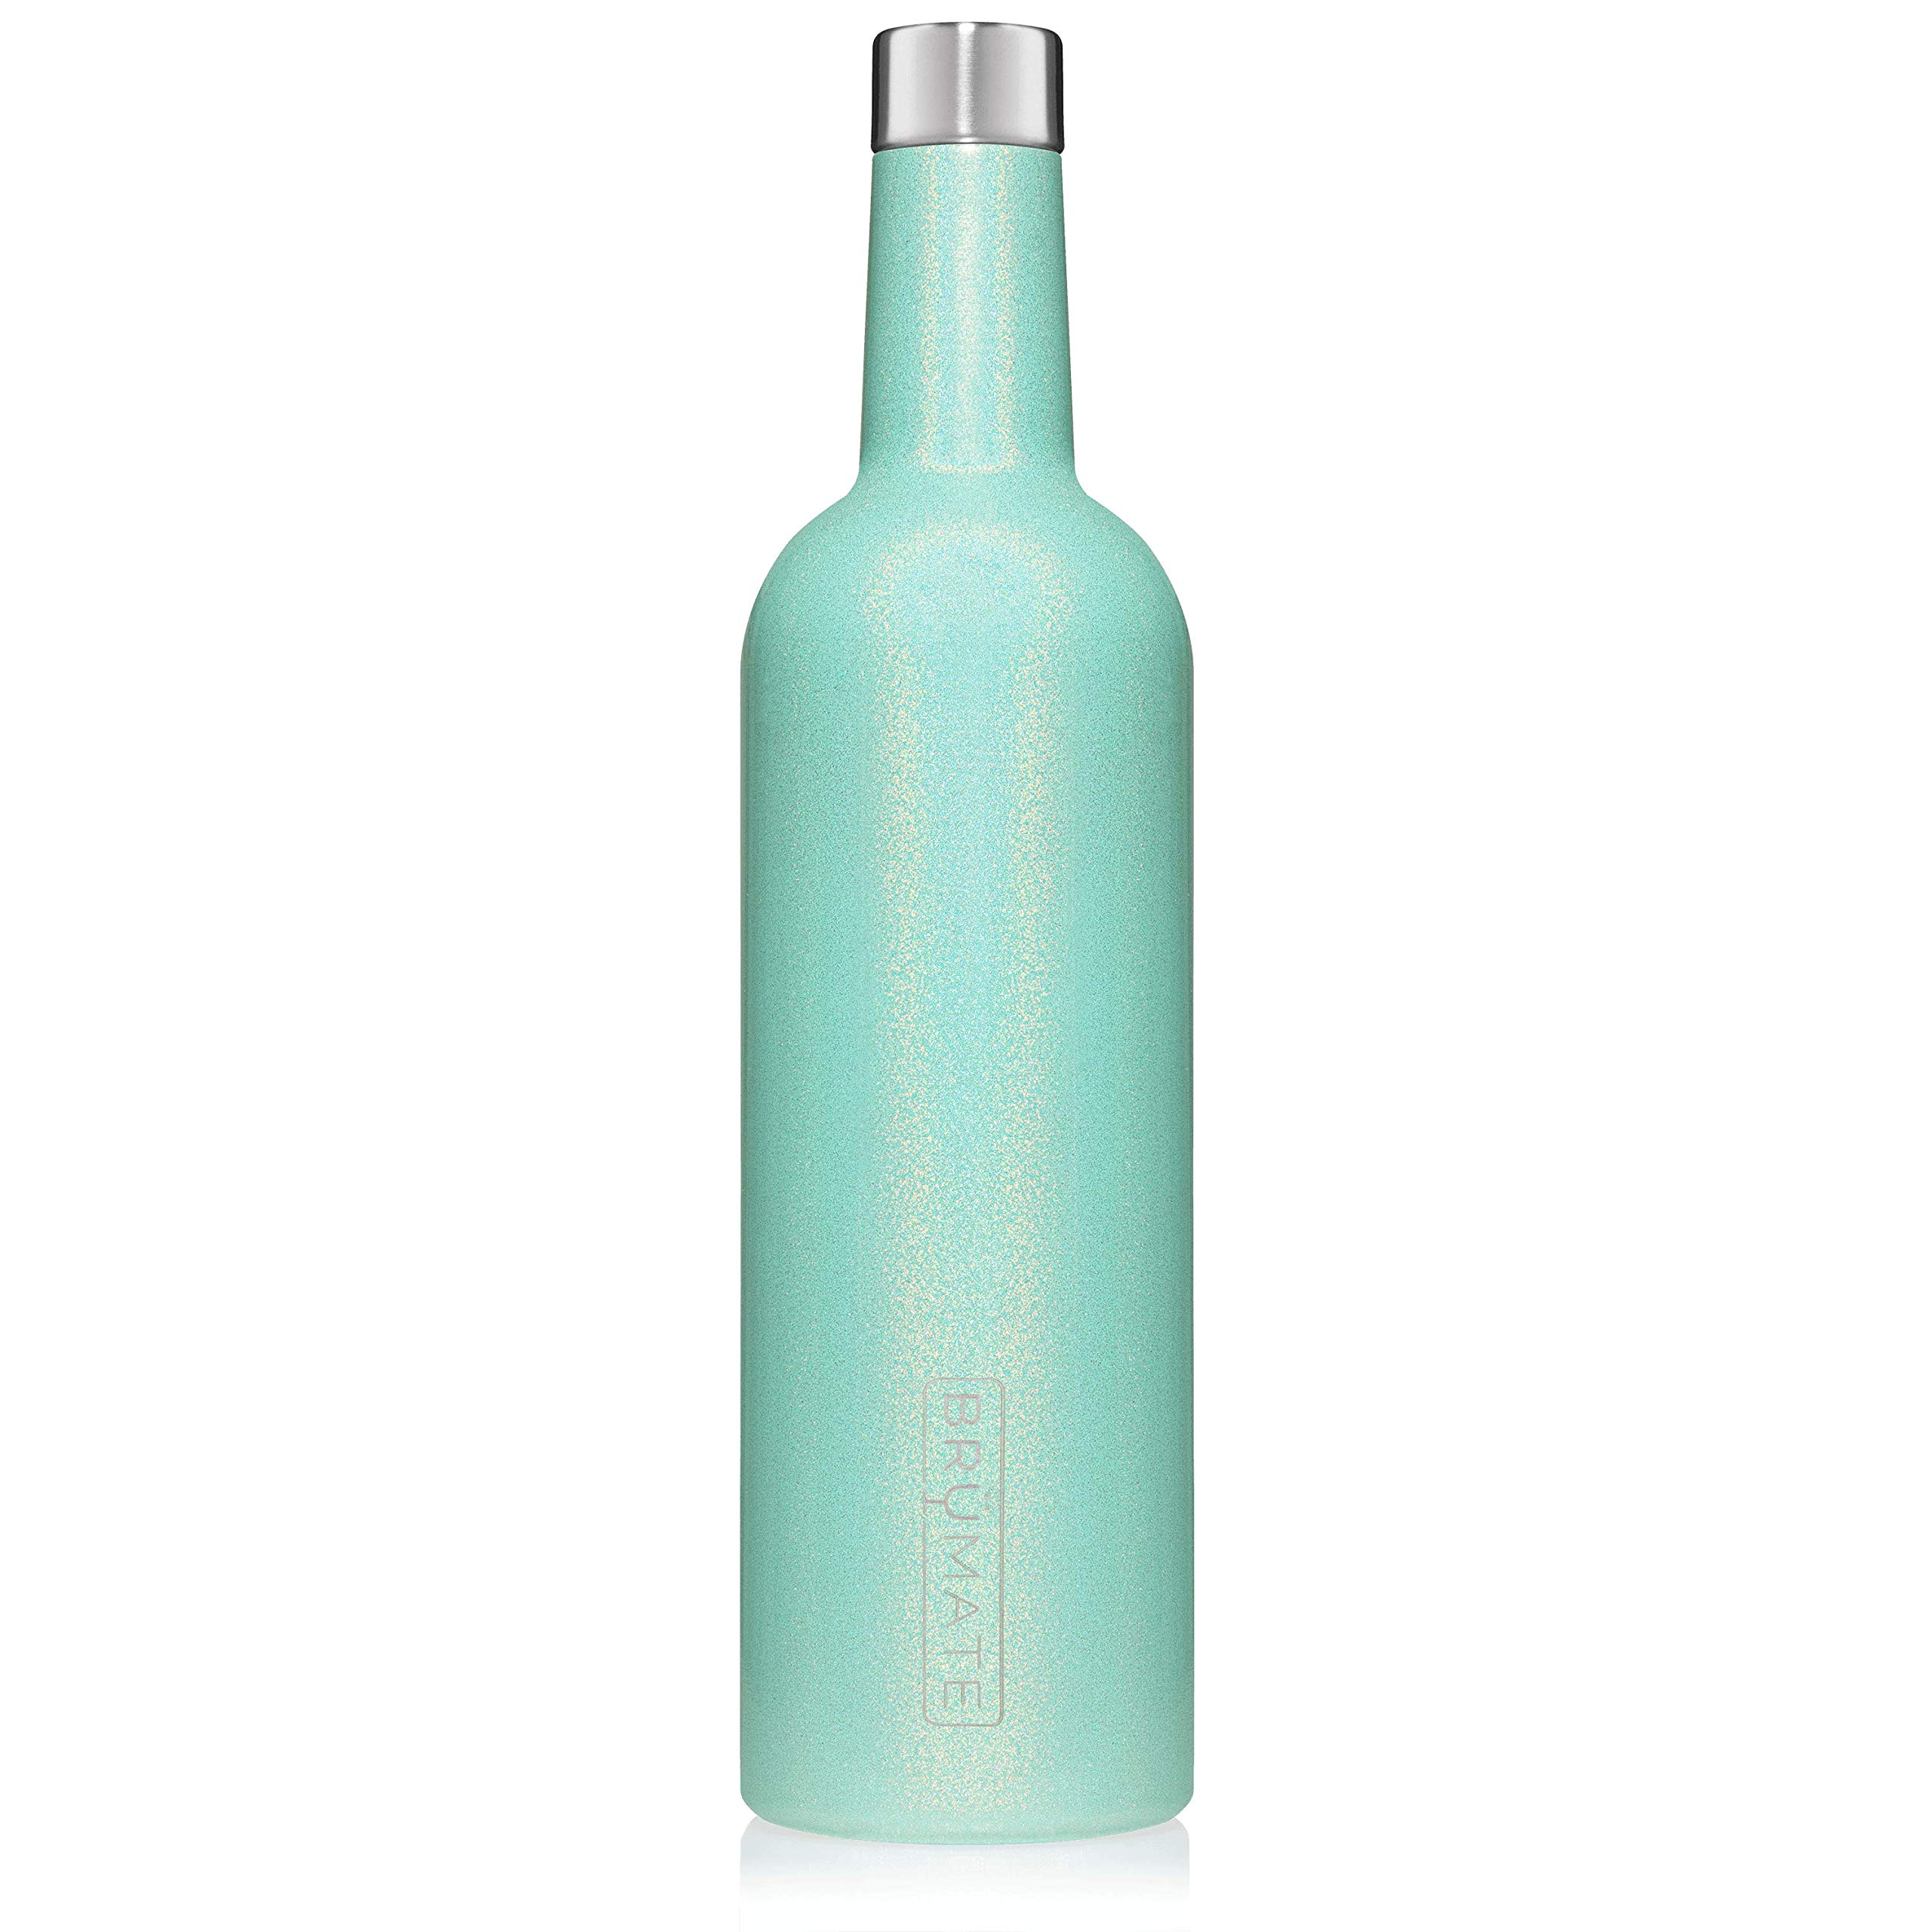 BrüMate Winesulator 25 Oz Triple-Walled Insulated Wine Canteen Made Of Stainless Steel, 24-hour Temperature Retention, Shatterproof, Comes With Matching Silicone Funnel (Glitter Aqua)